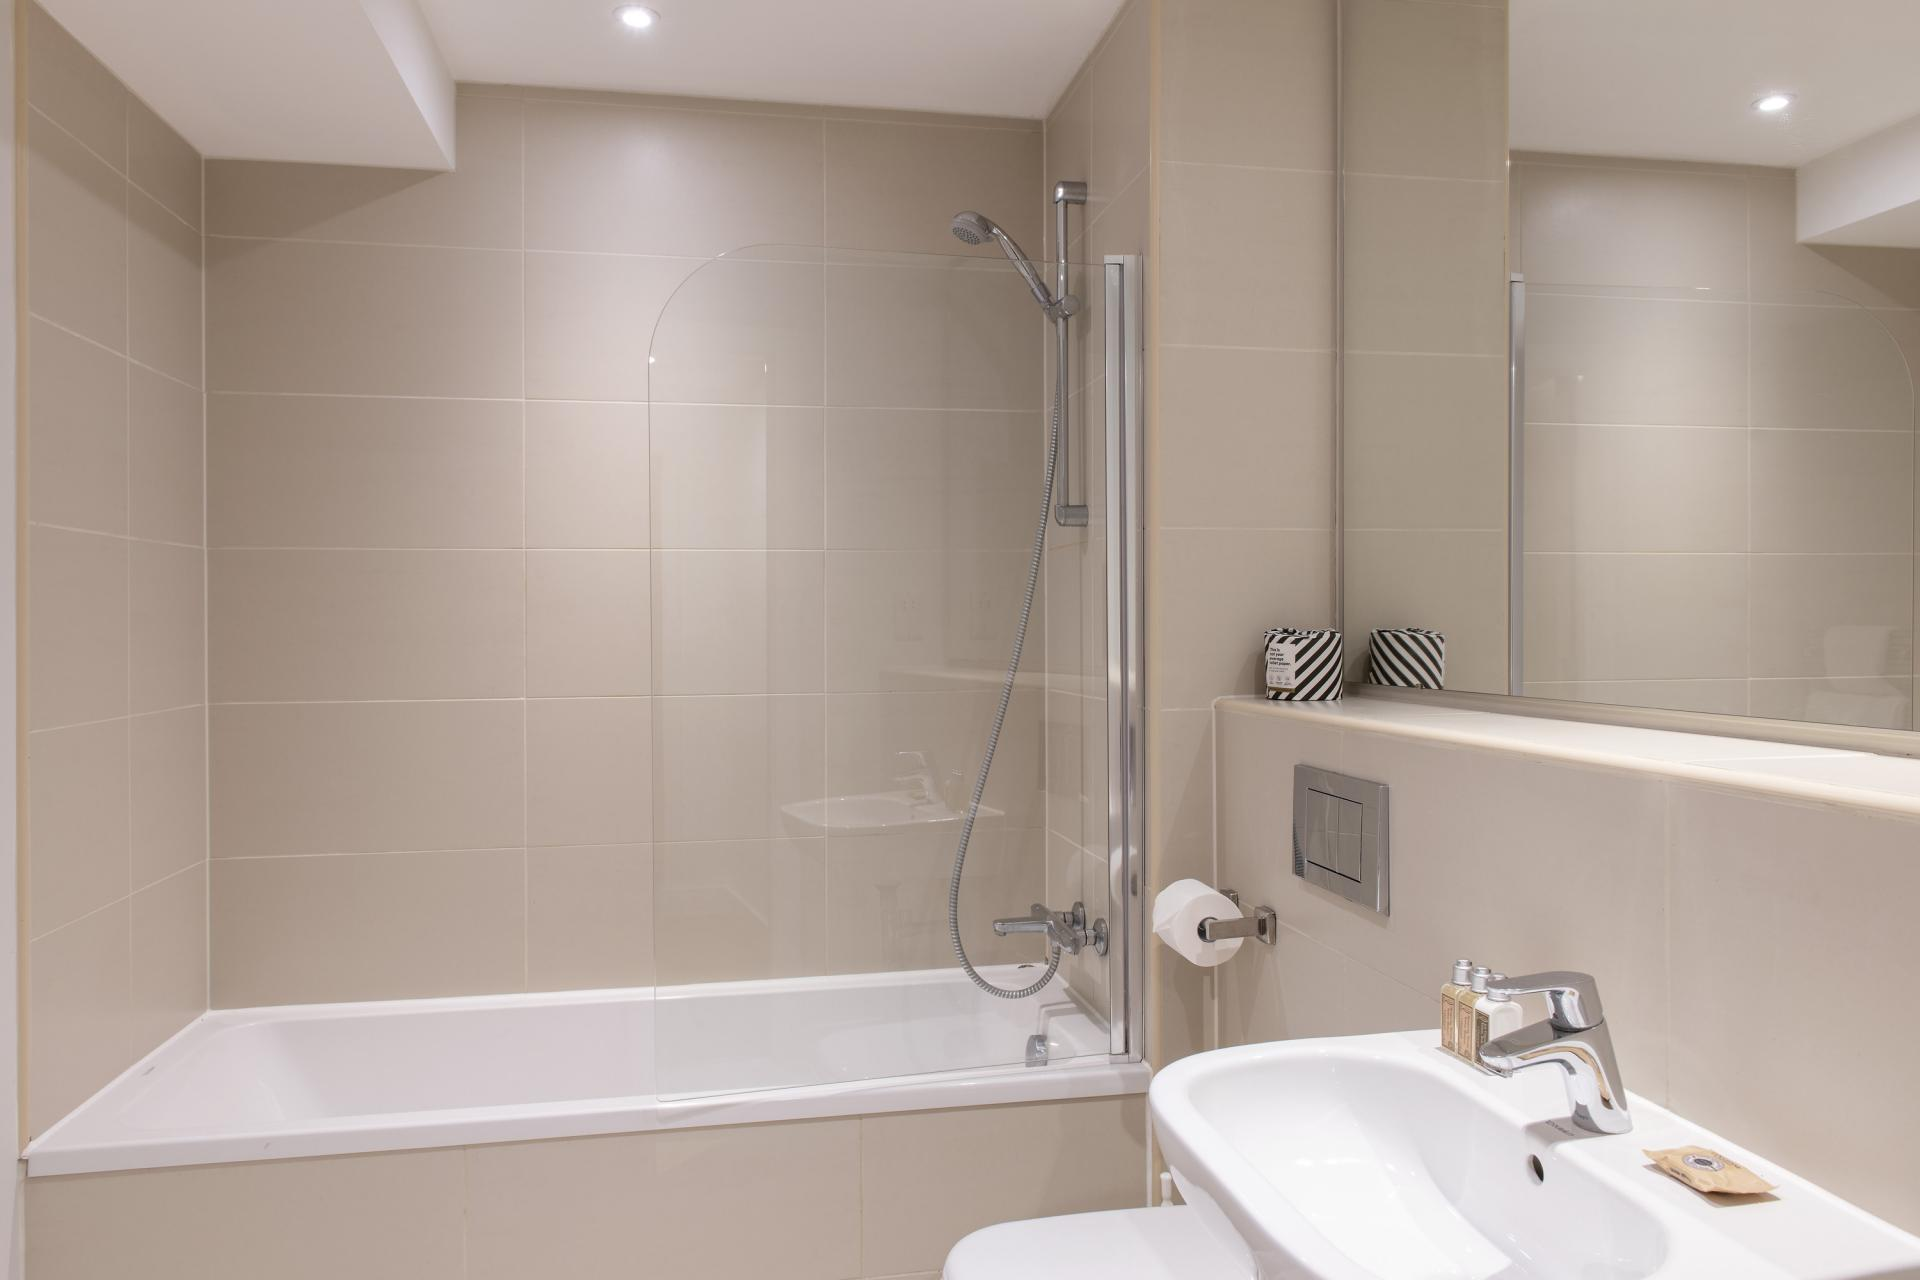 Bathroom at Cove Minshull Street, Piccadilly, Manchester - Citybase Apartments